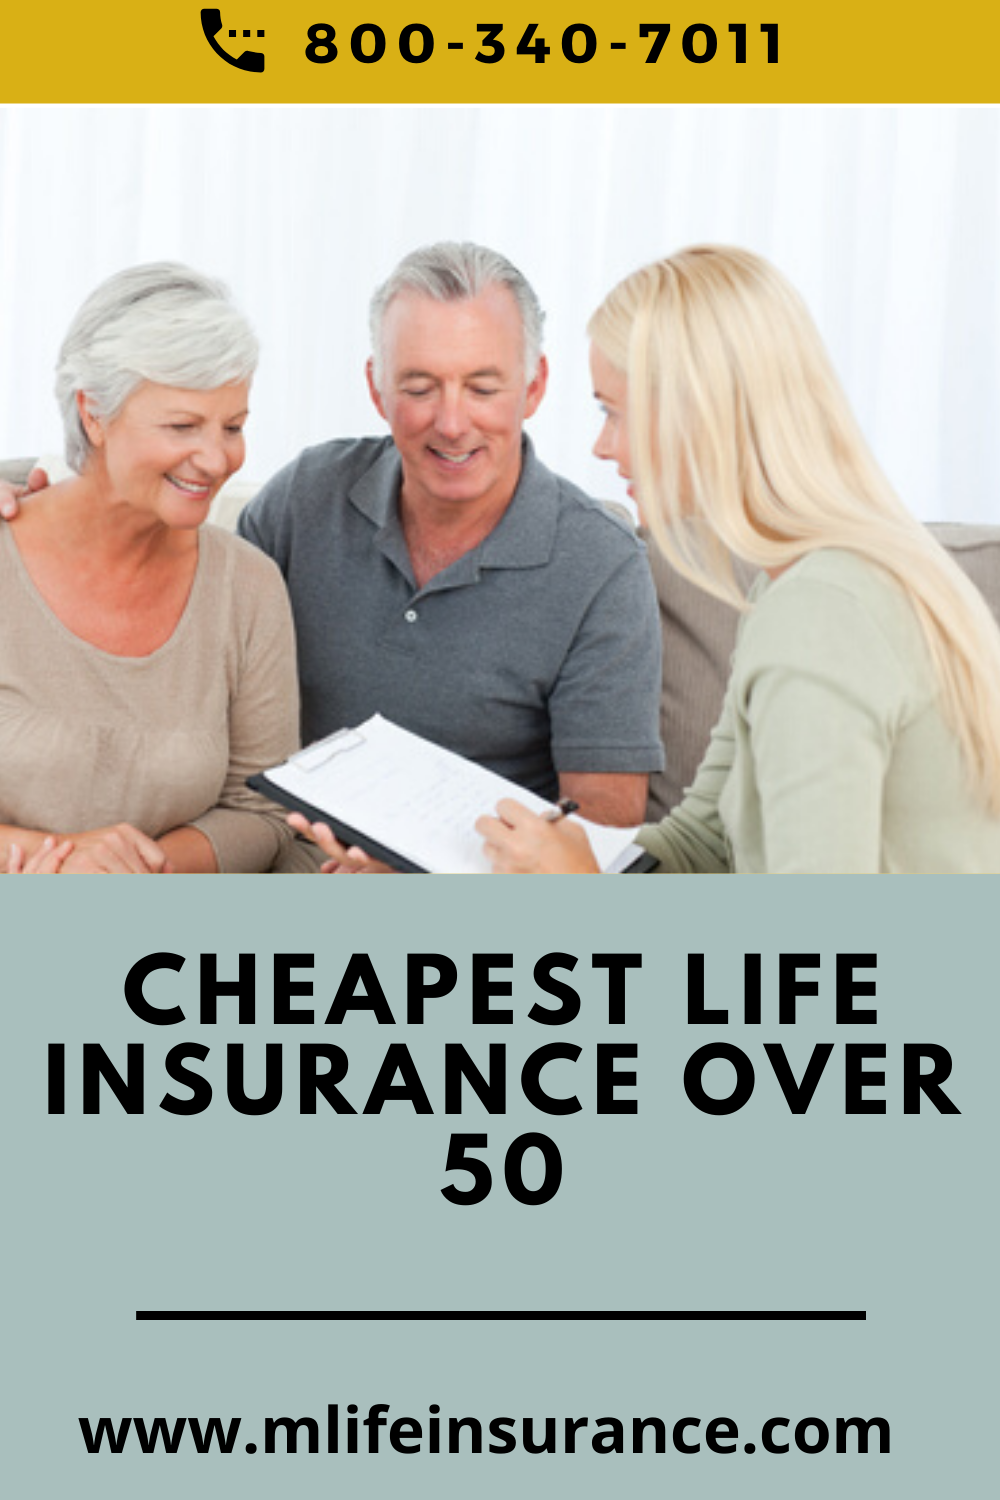 Cheapest Life Insurance For Over 50 In 2020 Life Insurance For